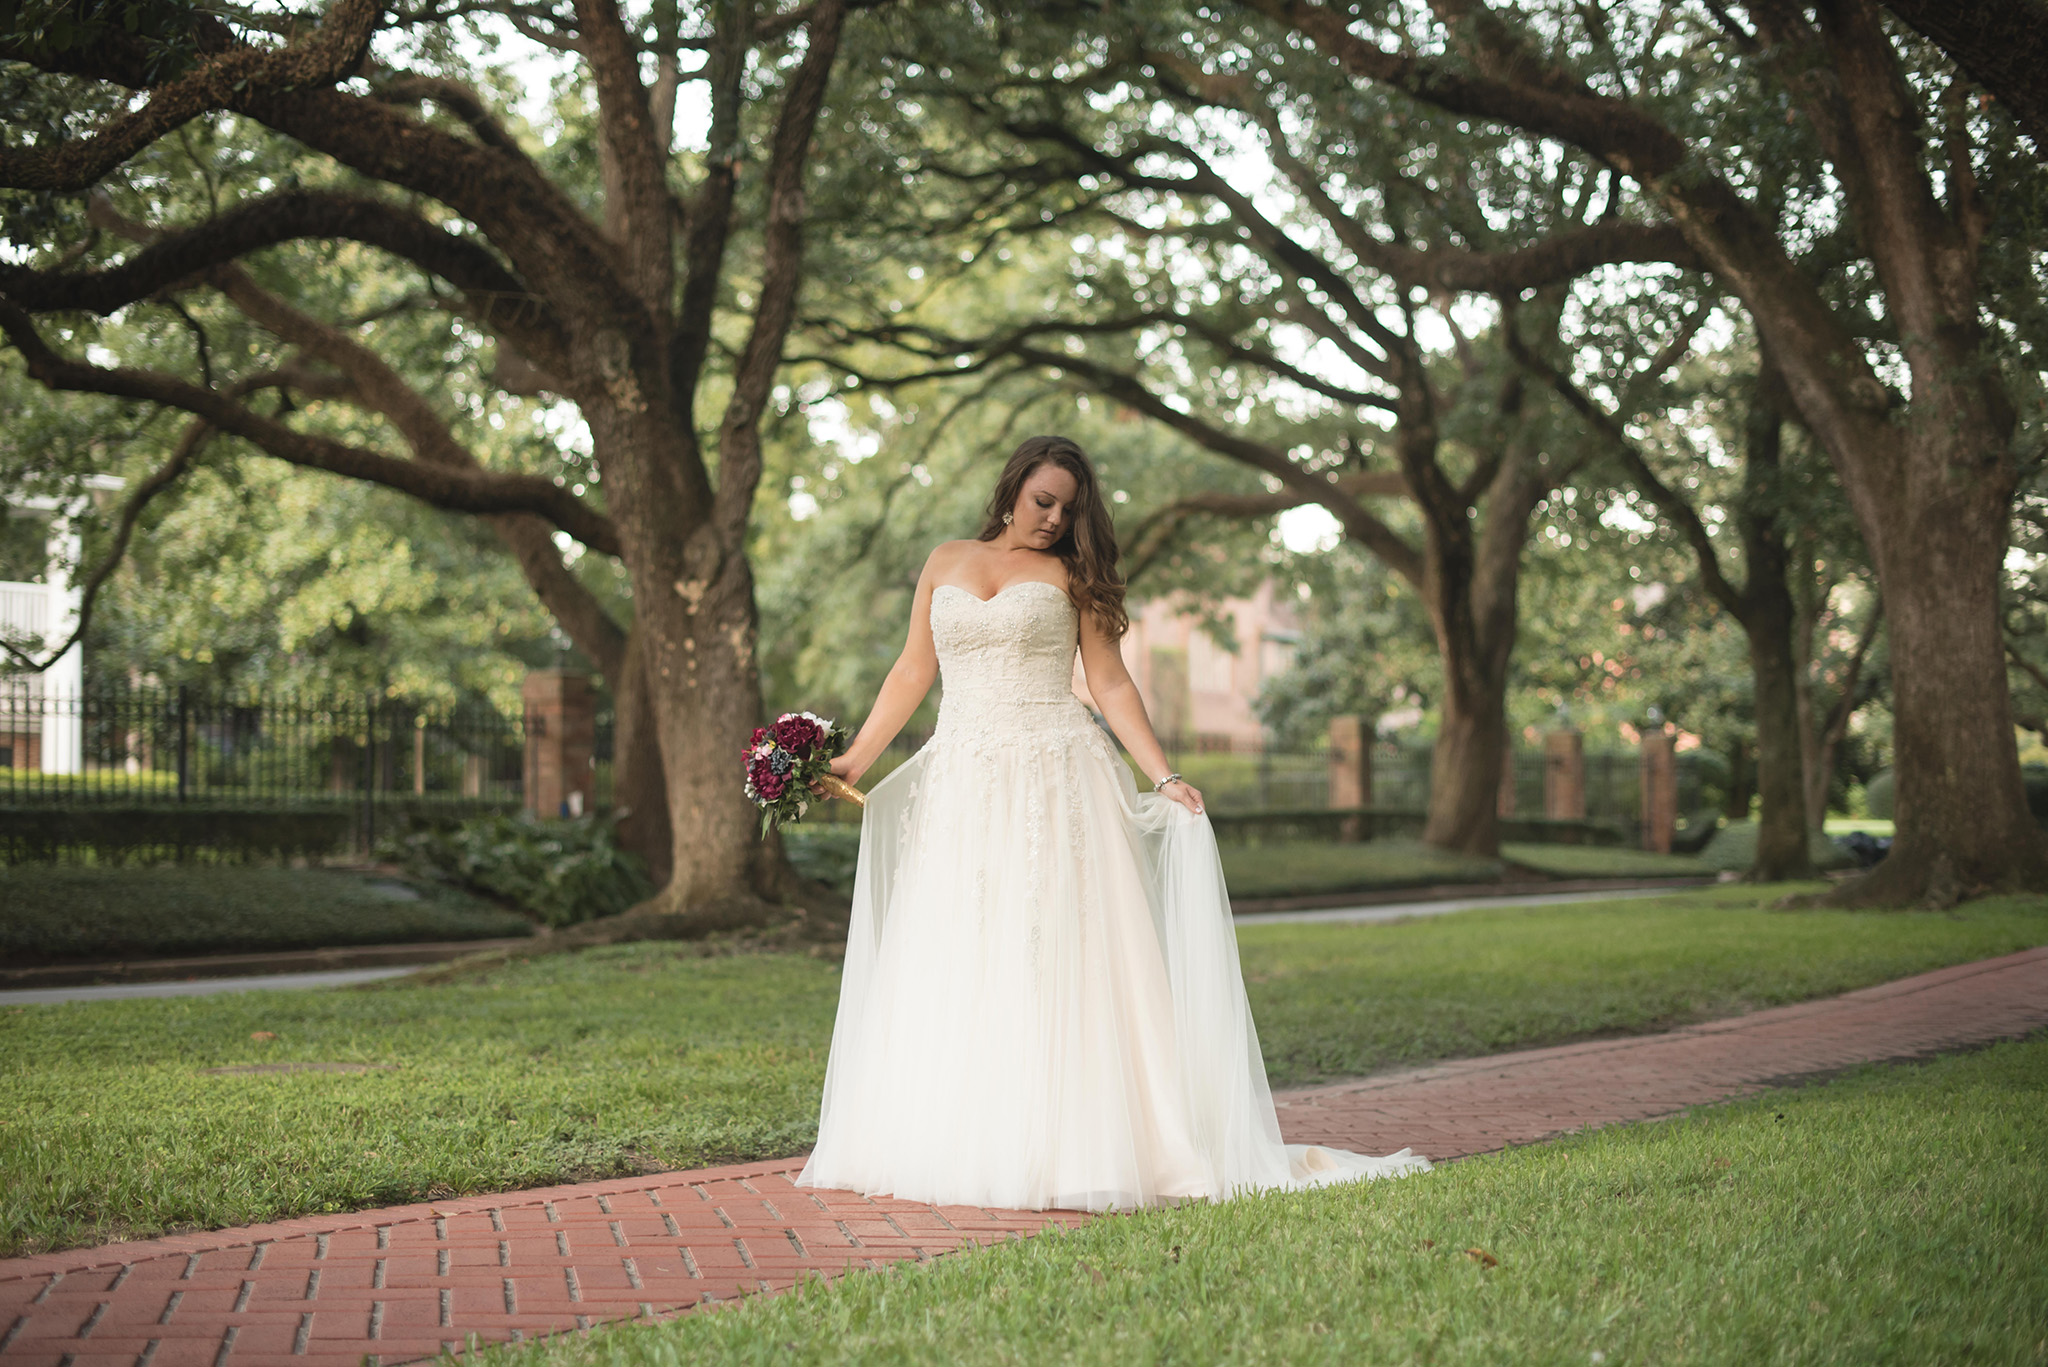 Boulevard-Oaks-Houston-Bridal-photo-session-kim-29.jpg